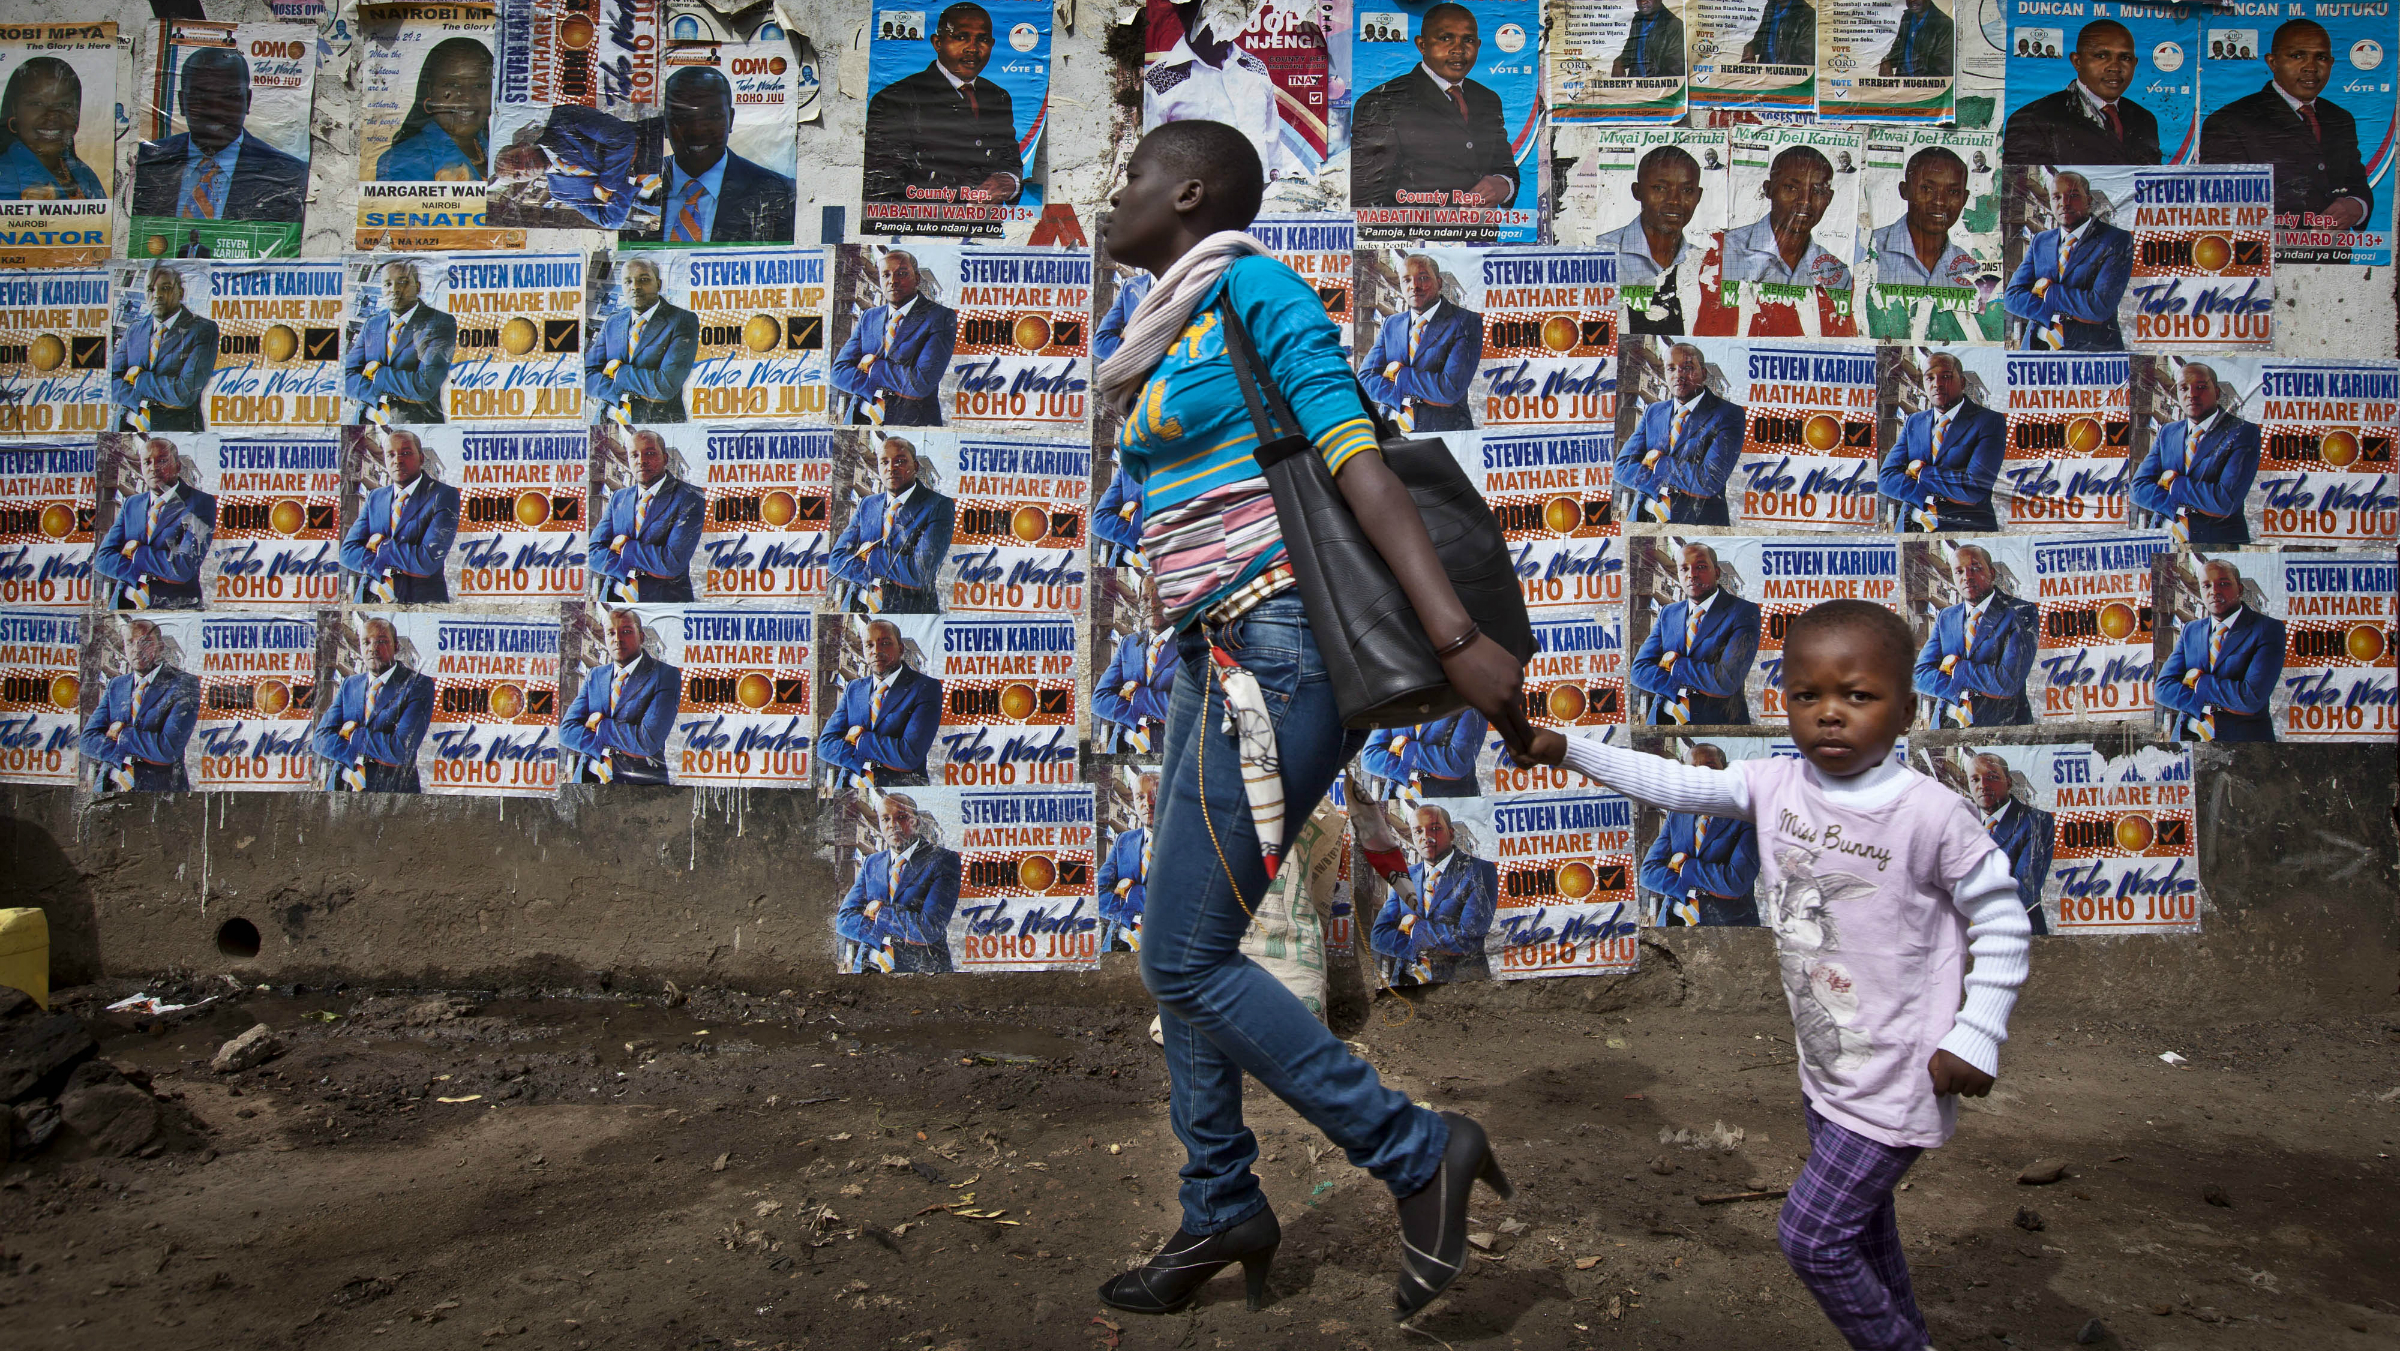 A mother and her child walk past a wall plastered with election campaigning posters in the Mathare slum of Nairobi.